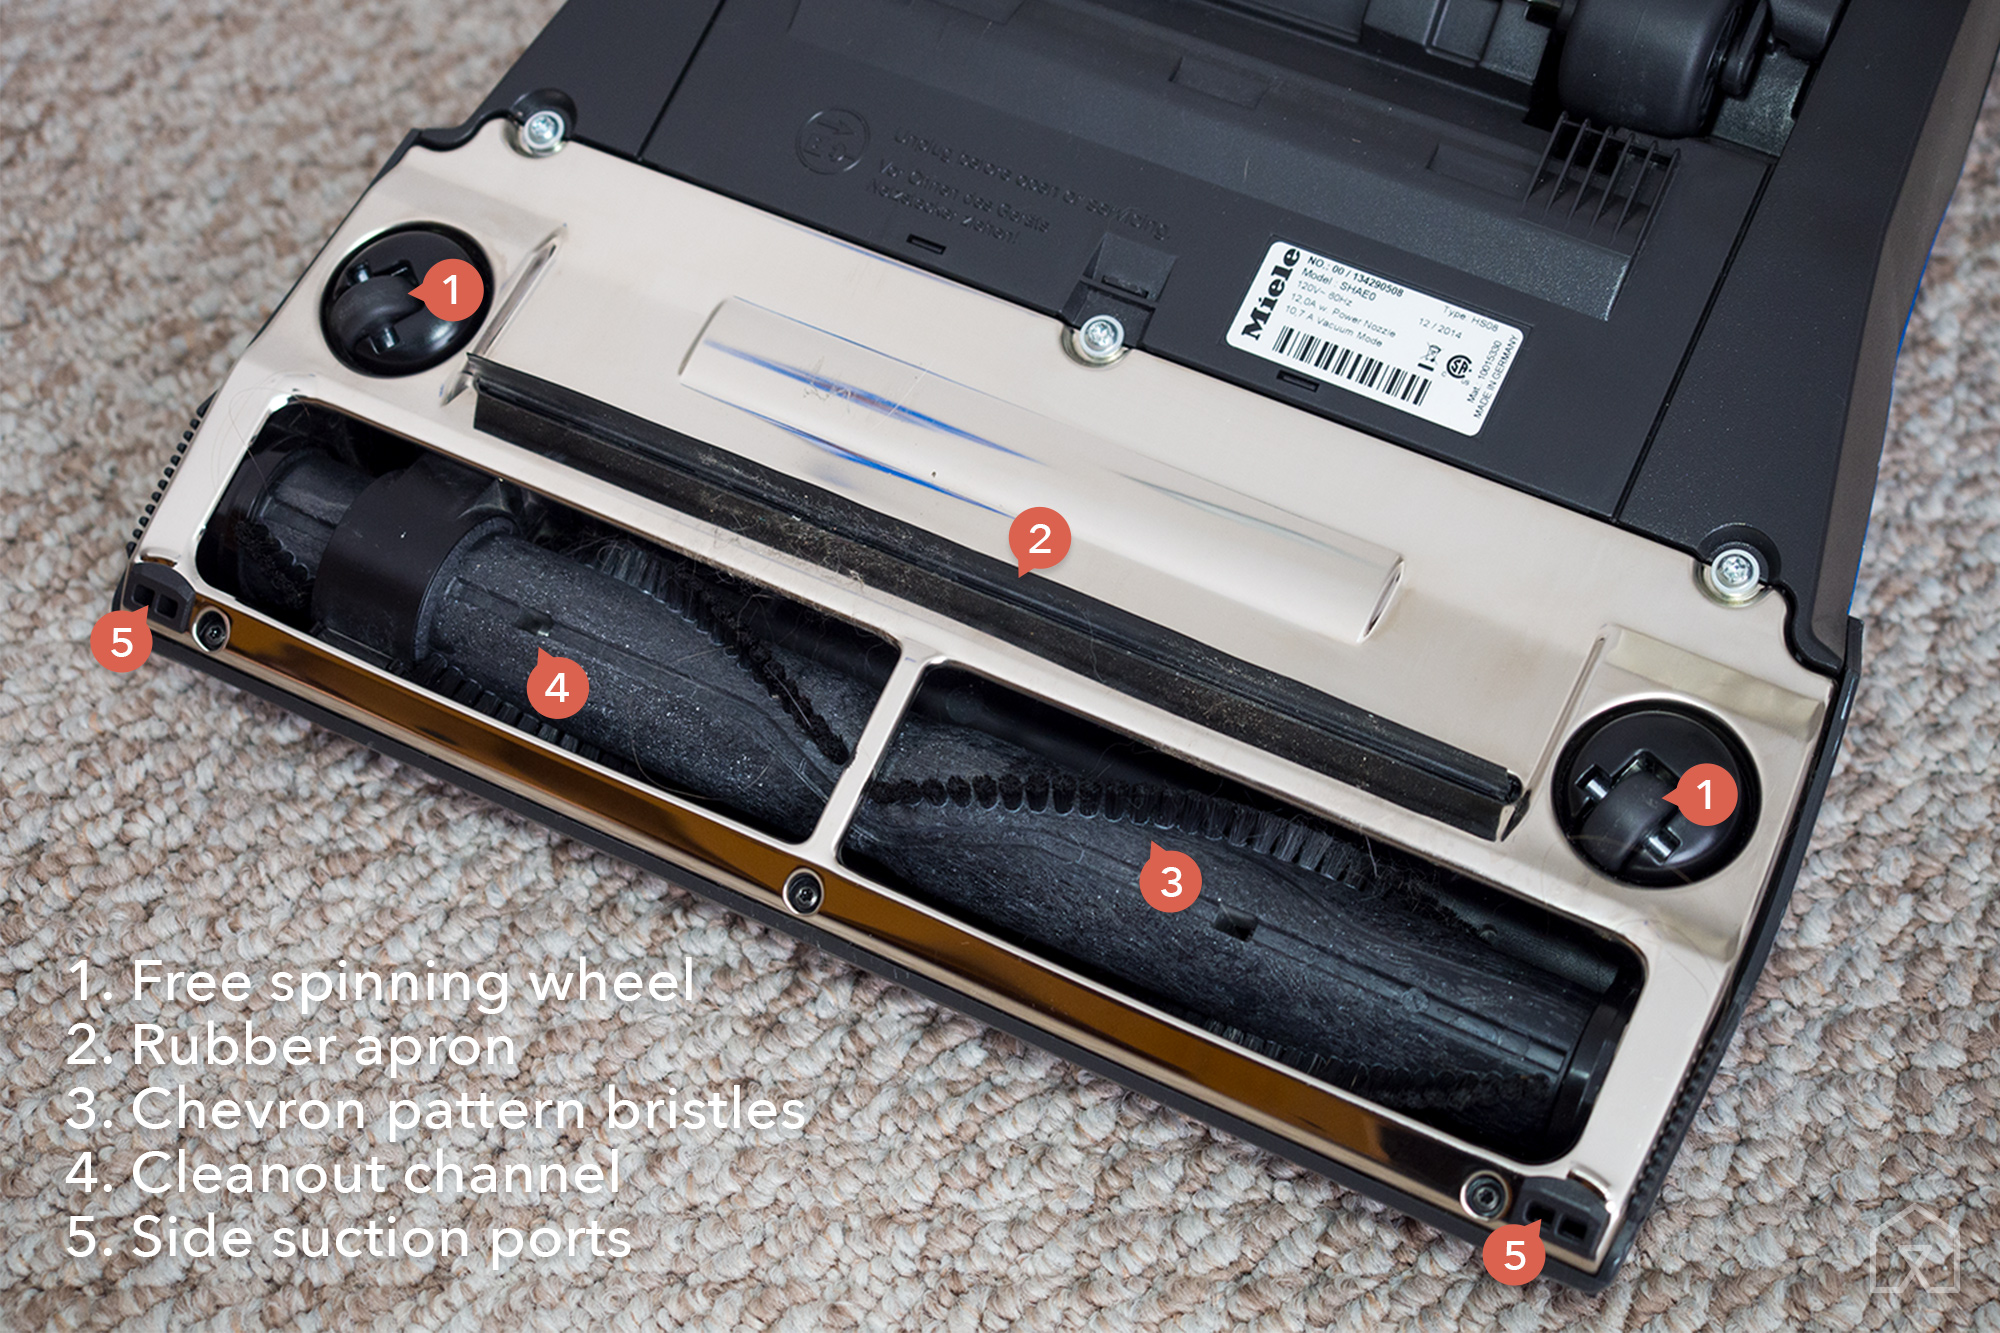 The Best Vacuum Cleaners Engadget